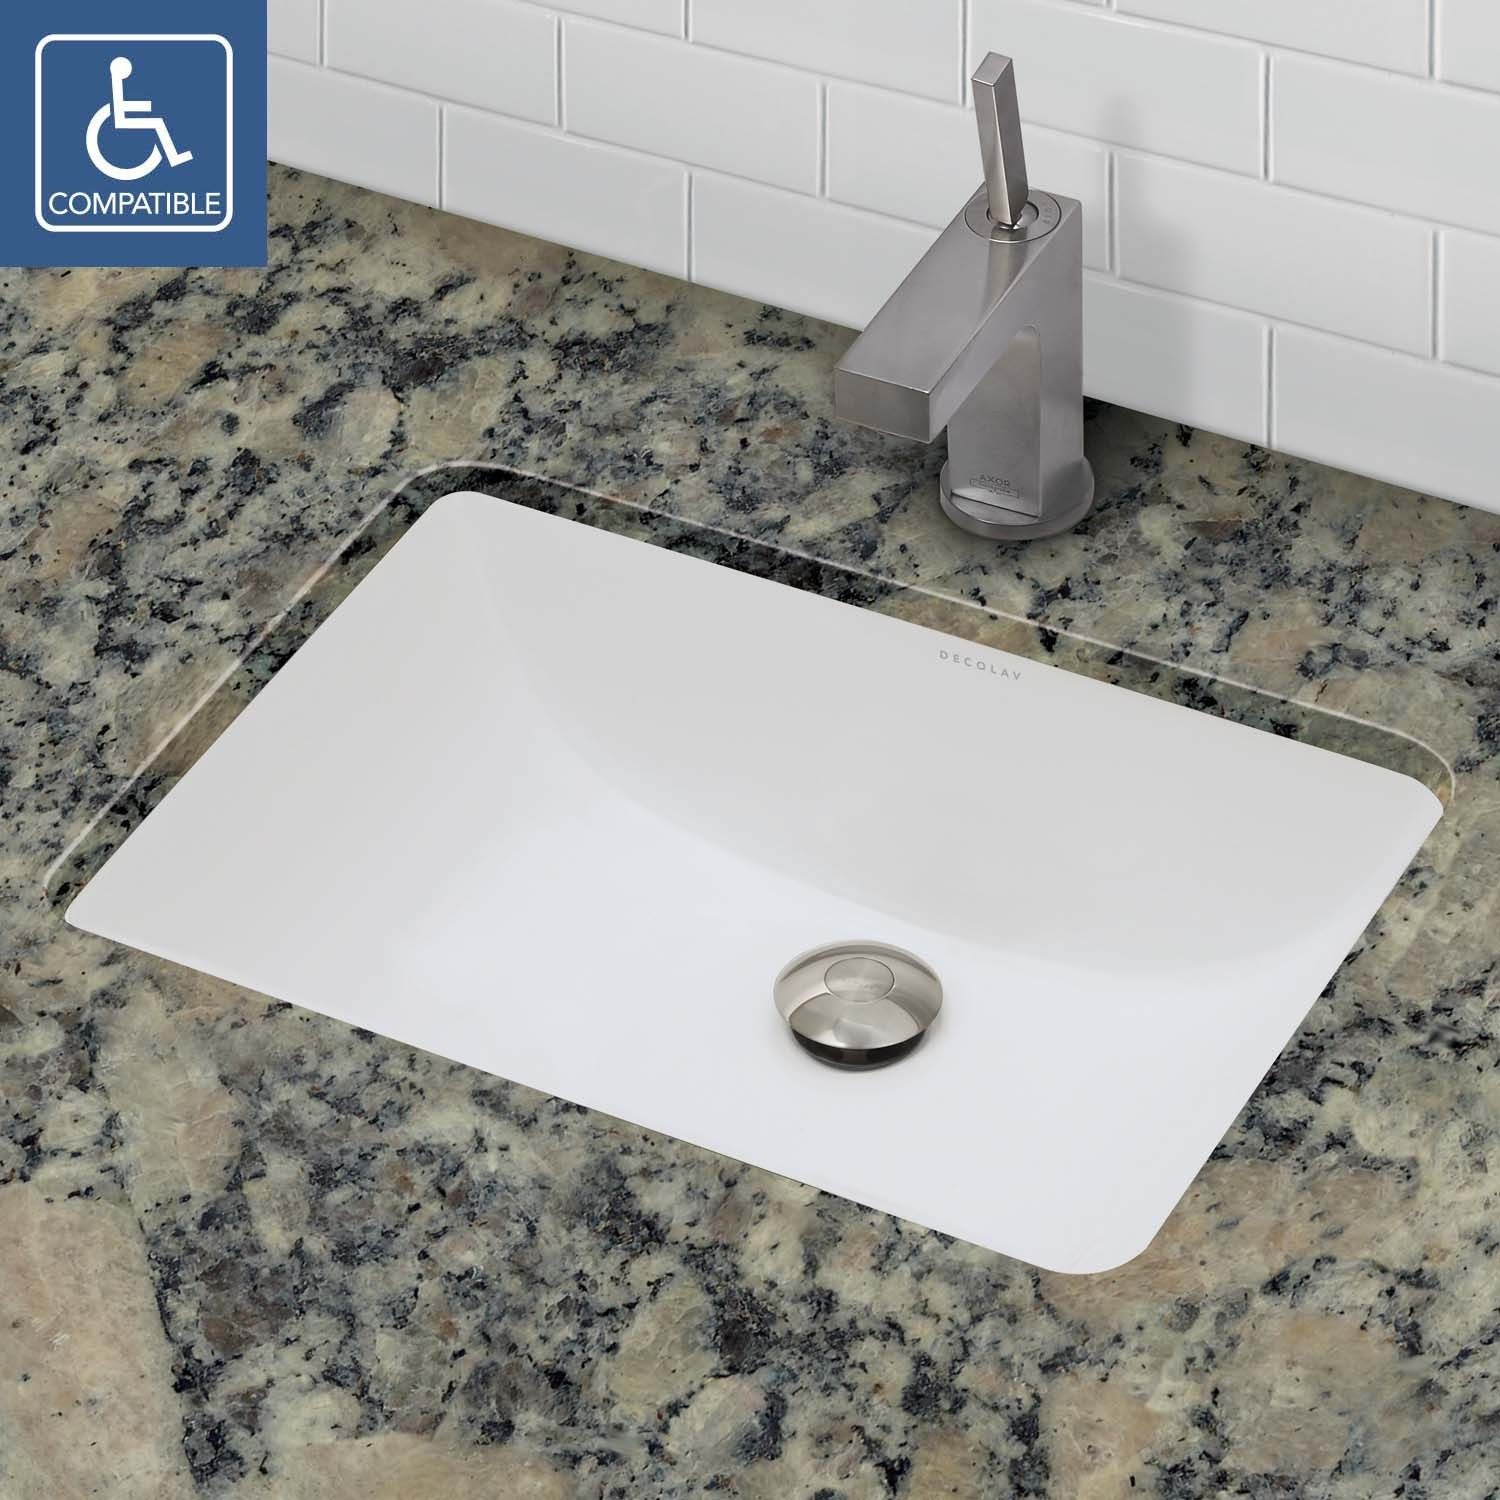 Classically Redefined Rectangular Undermount Vitreous China Bathroom Sink Undermount Bathroom Sink Rectangular Sink Bathroom Ceramic Bathroom Sink